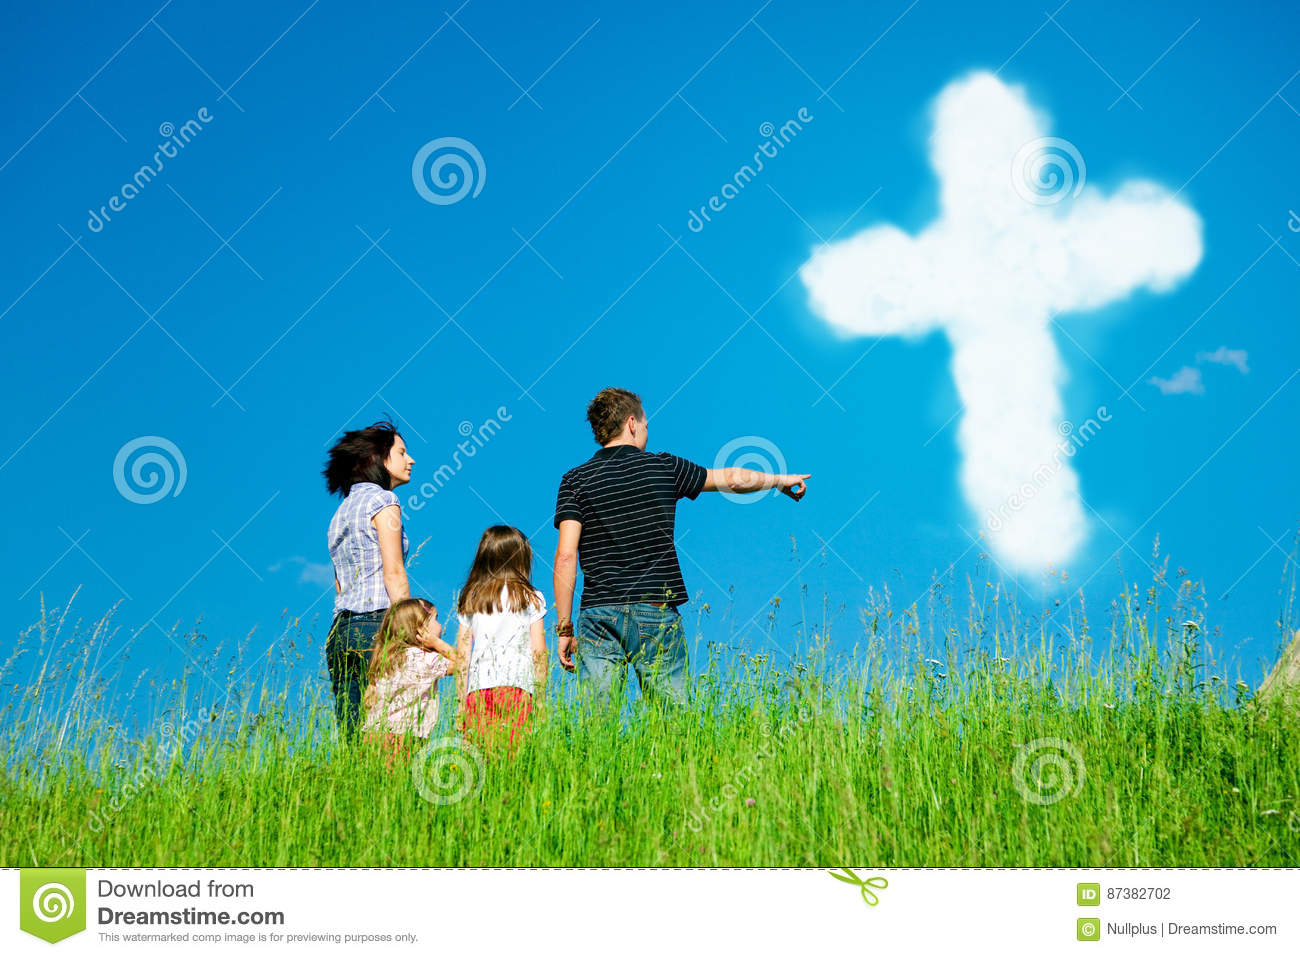 Silhouette of the holy cross on background of storm clouds stock - Christian Family Looking At Clouds Forming The Holy Cross Stock Photo